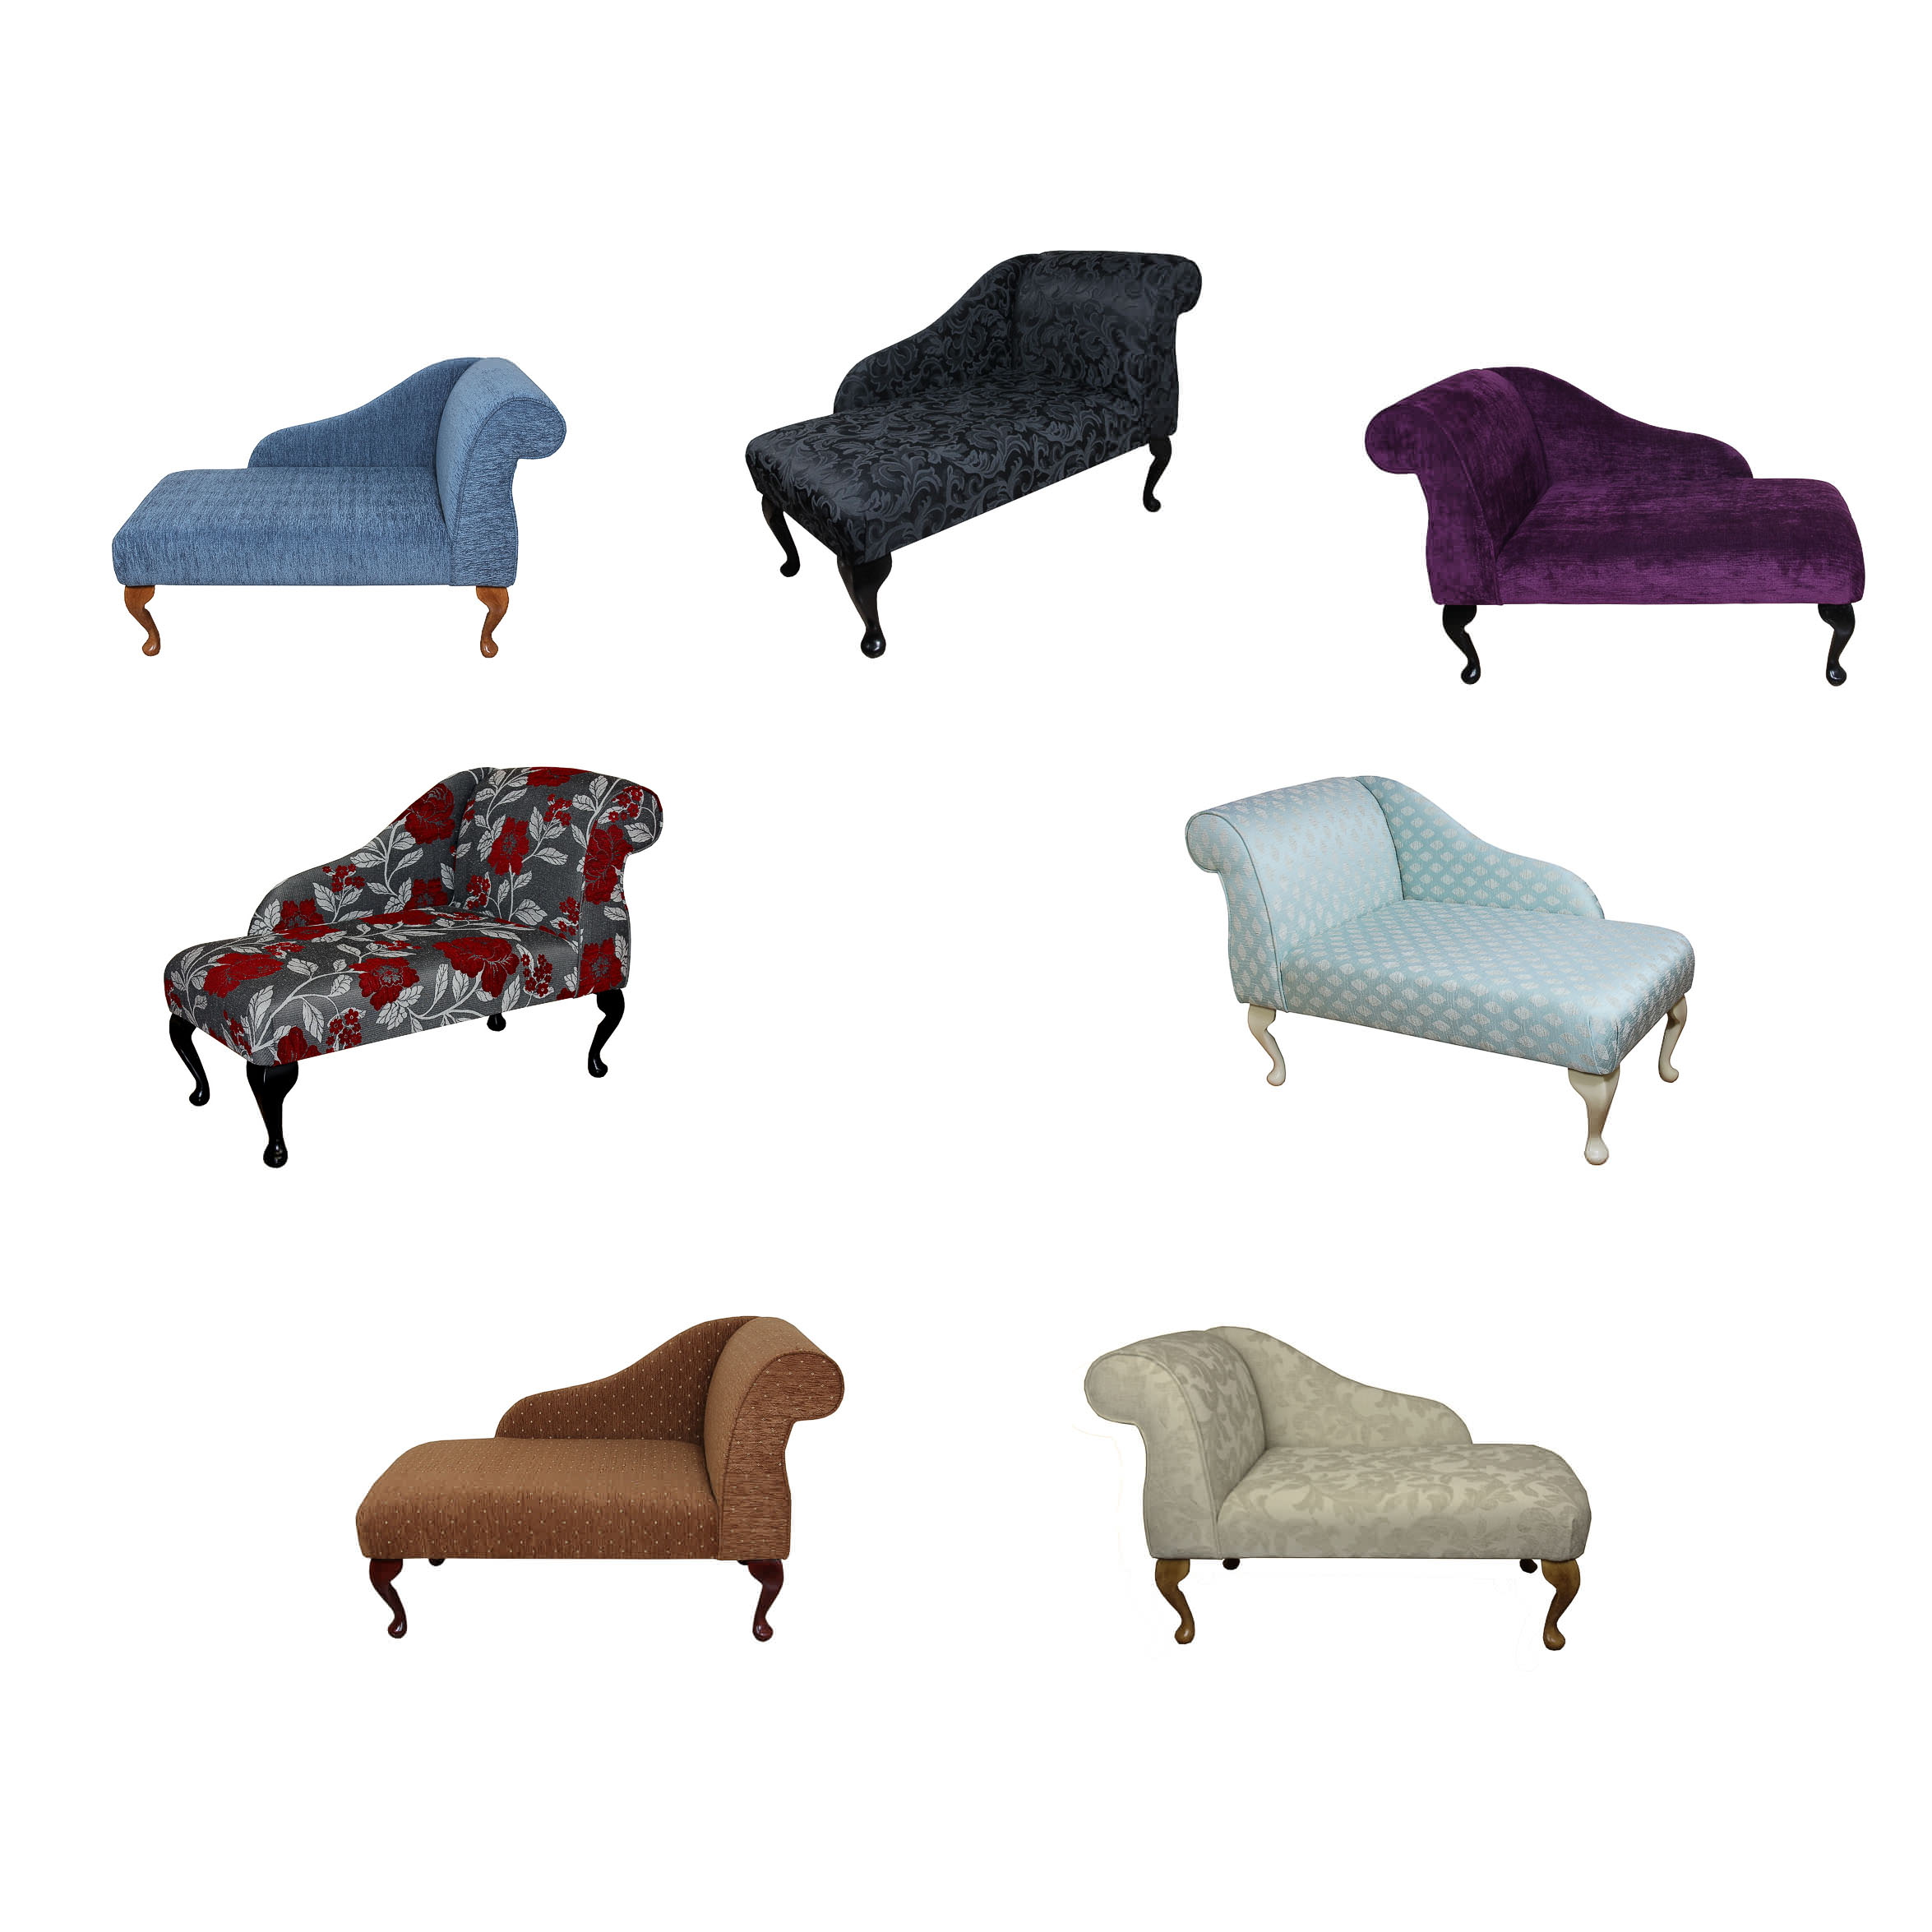 41 chaise longue beaumont furnishings for Chaise longues uk